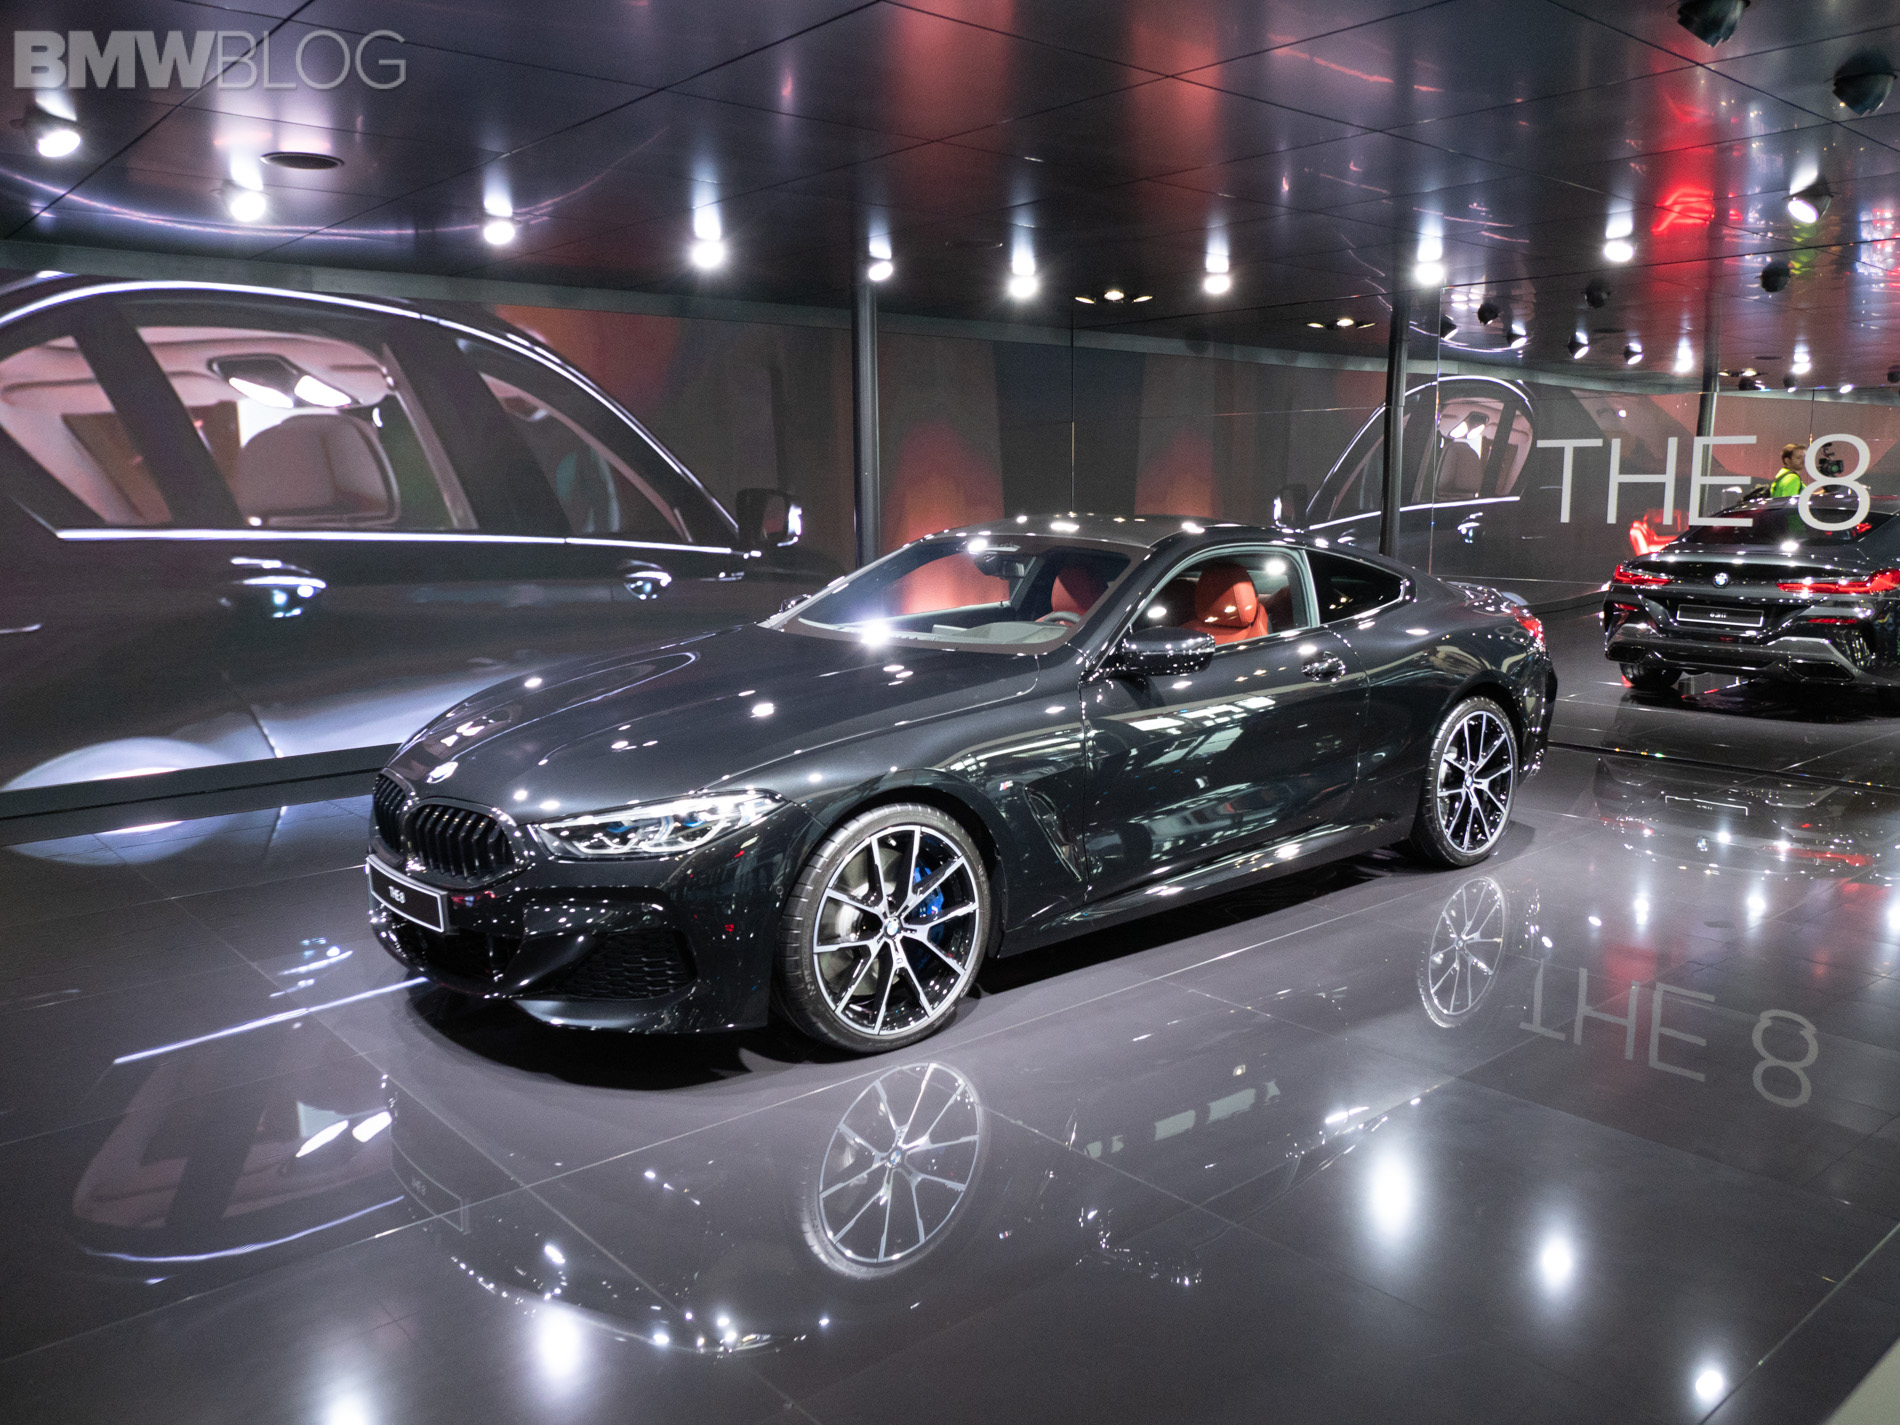 Paris 2018: BMW M850i Coupe looks stunning in black